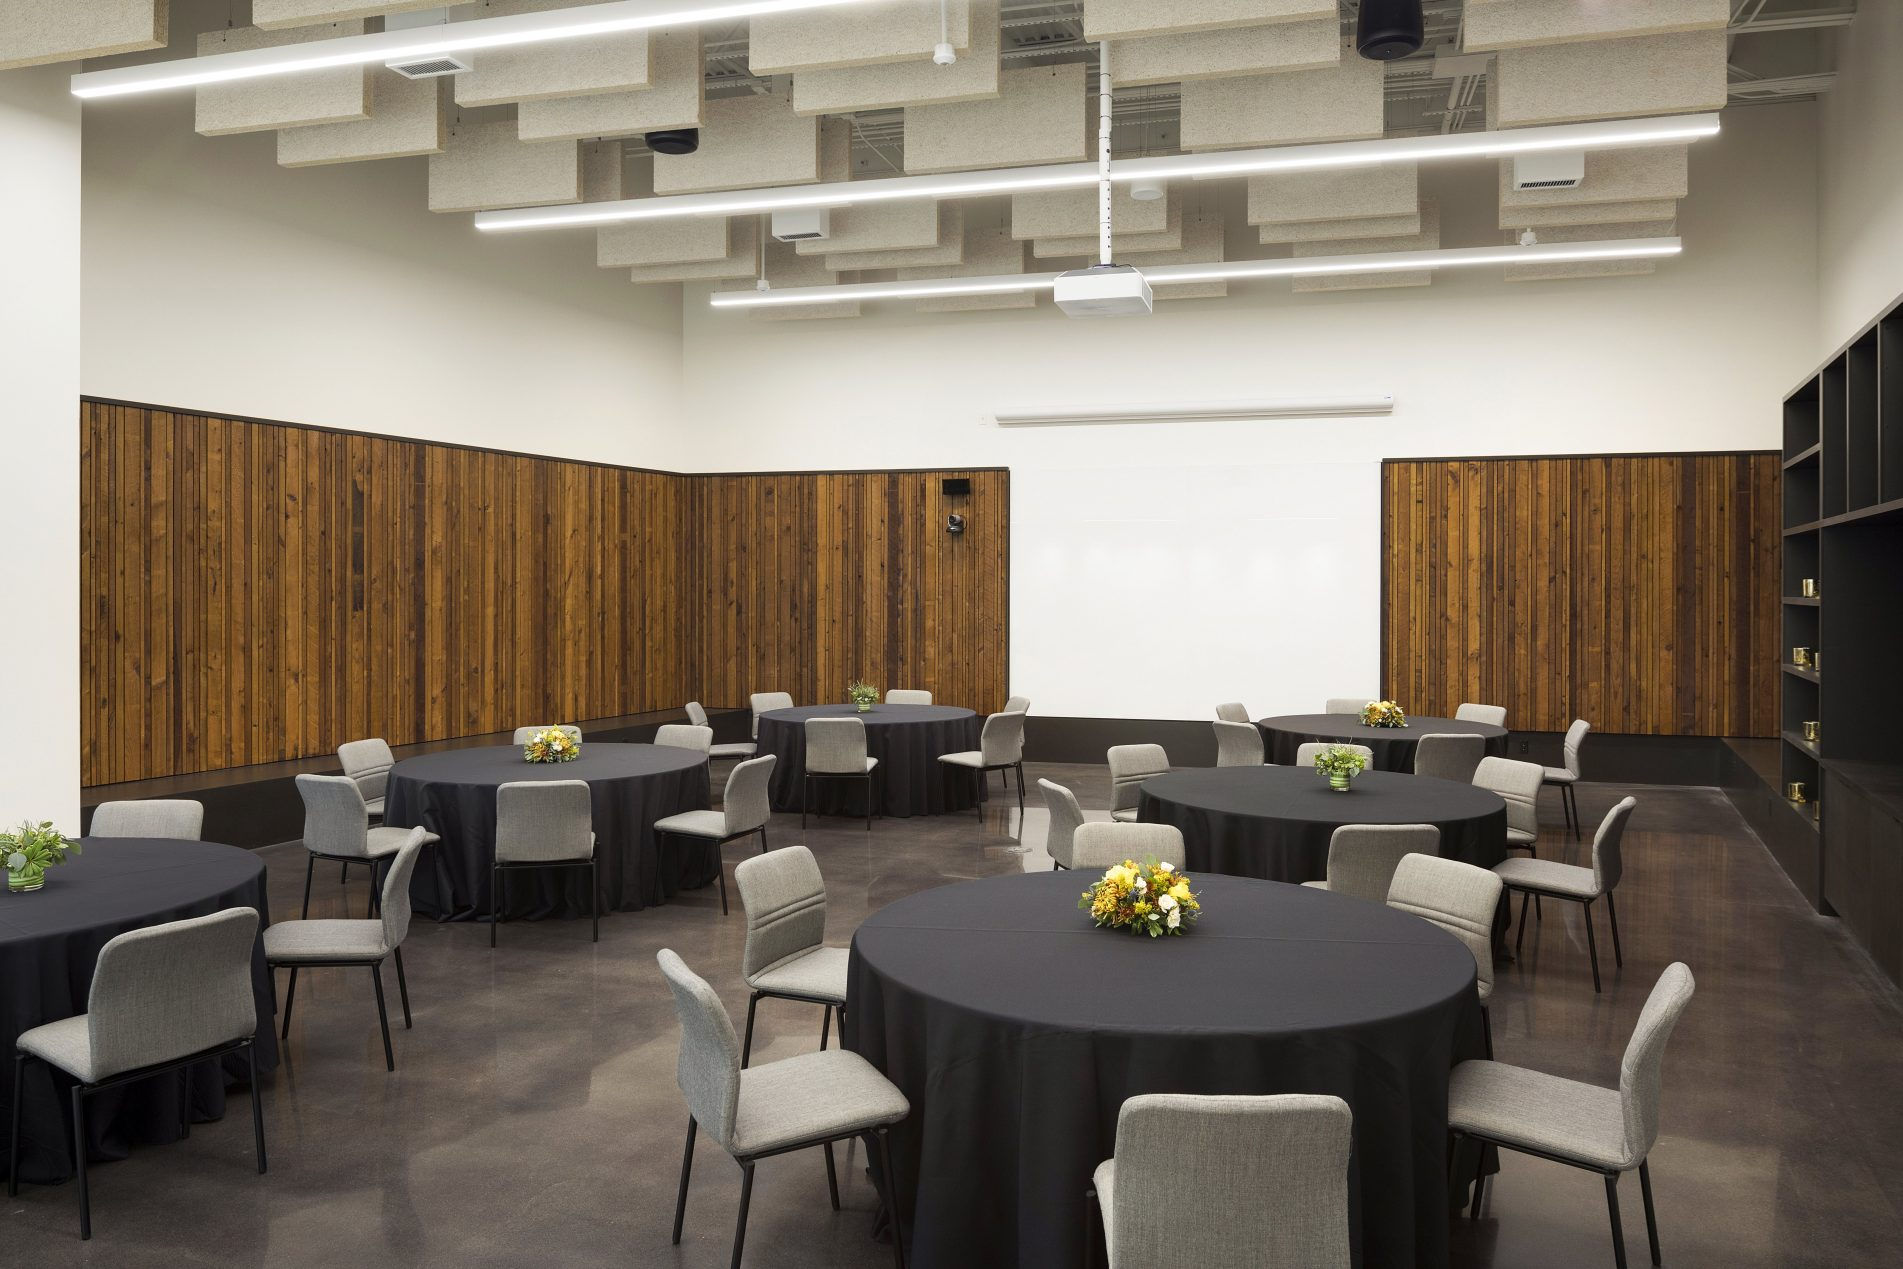 The Nucleus room at the Bell Museum, set up for luncheon seating with round tables